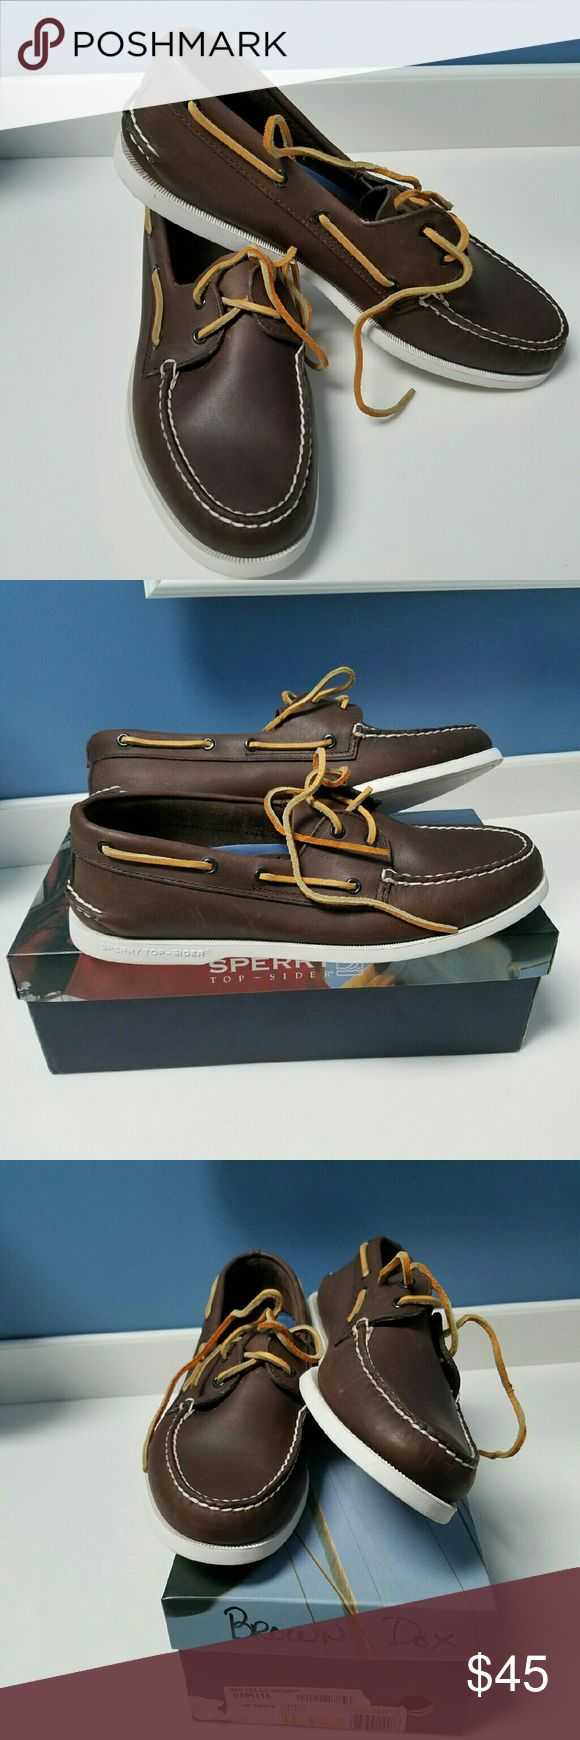 SPERRY TOPSIDER Boat Shoes Size 11 These are store returns. Look to be only worn maybe once or just display models. These show no wear except for extremely light soiling on the white bottom.  Brand: Sperry Style: Topsider boat shoes Size: 11 Sperry Top-Sider Shoes Boat Shoes